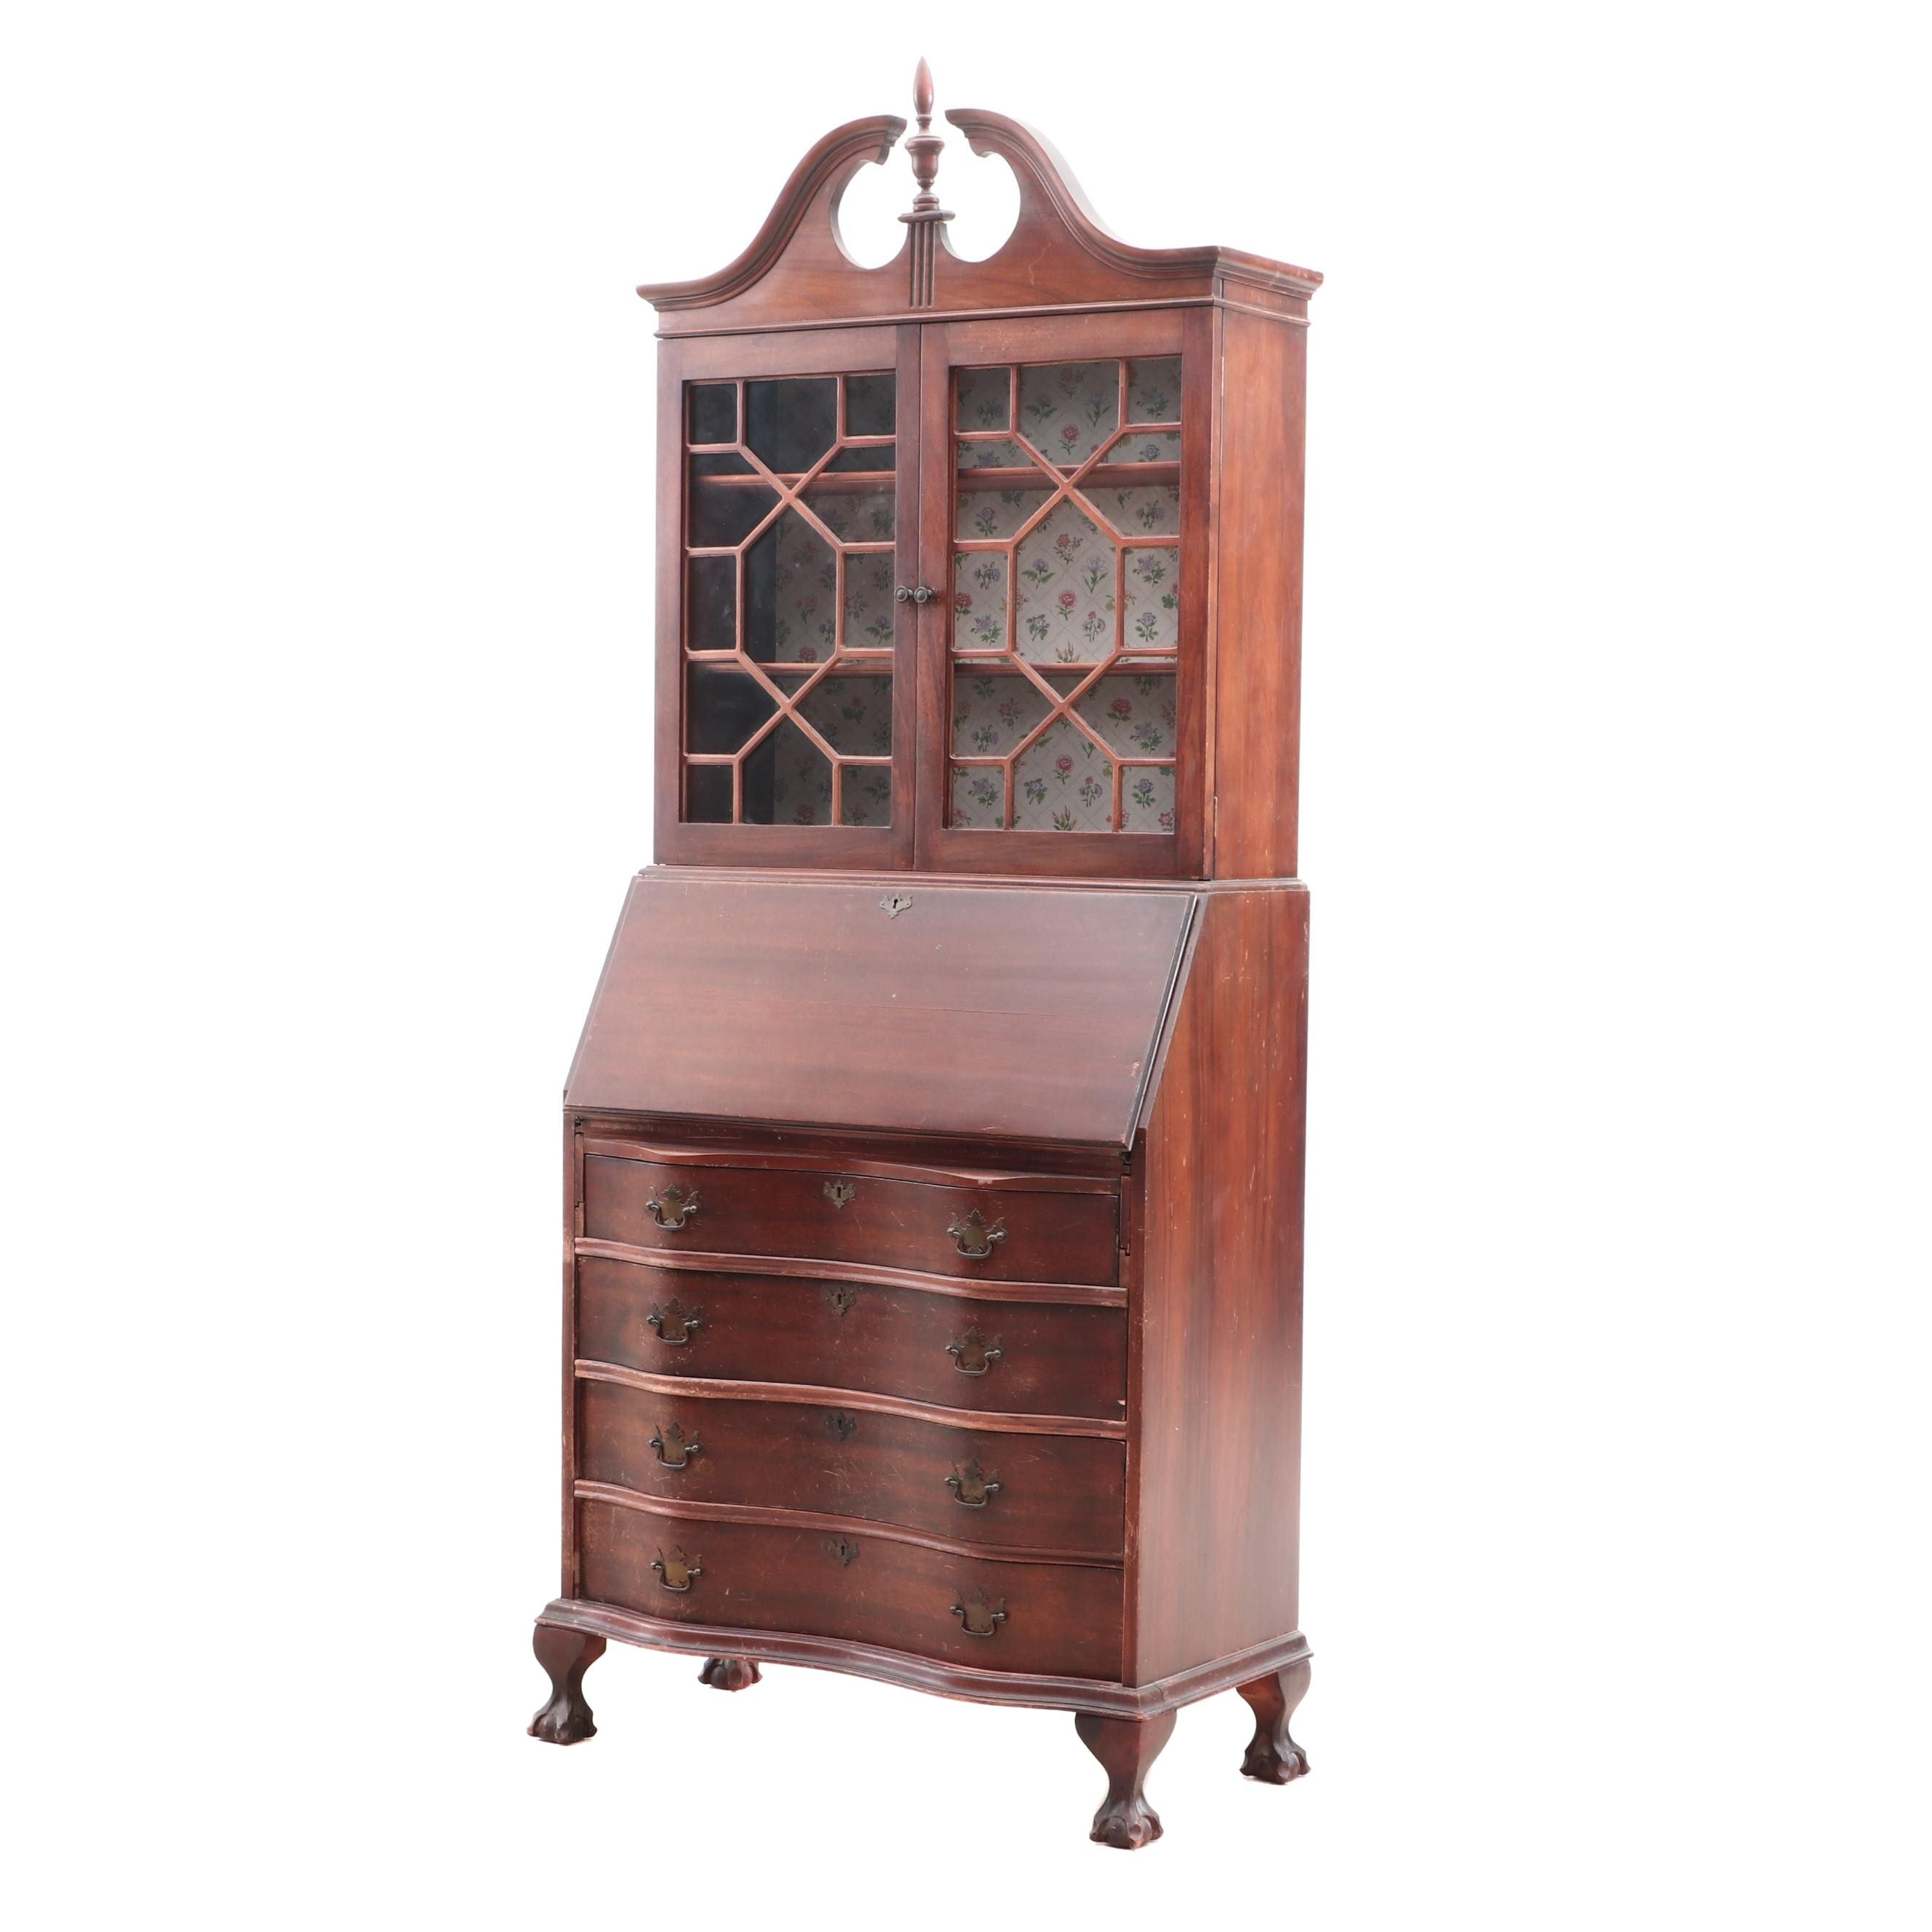 Federal Style Cherry Bookcase Serpentine Front Secretary by Ebert Furniture